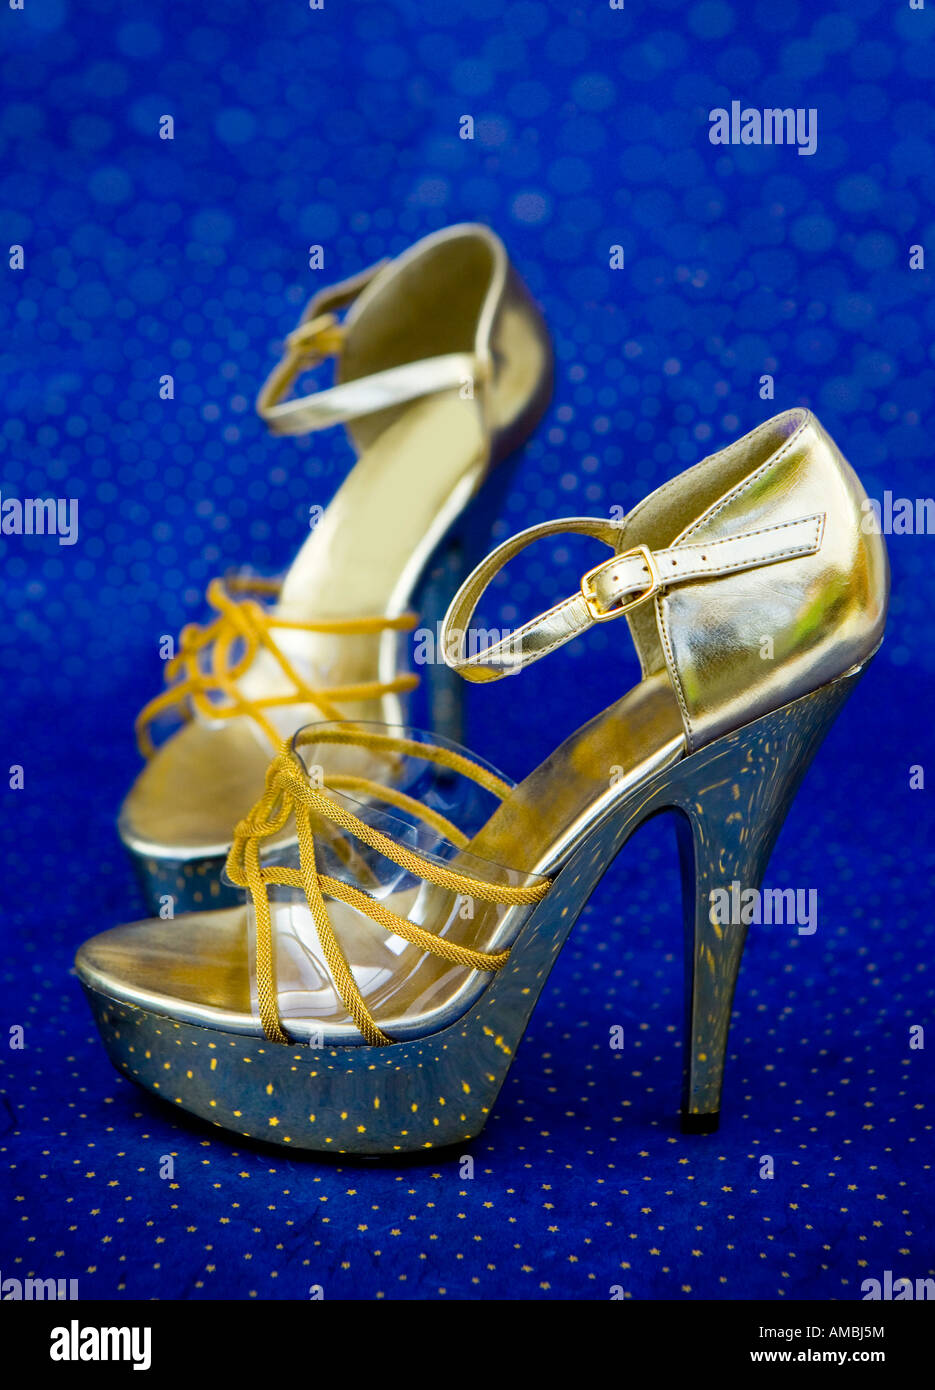 Retro gold high heels platform shoes - Stock Image